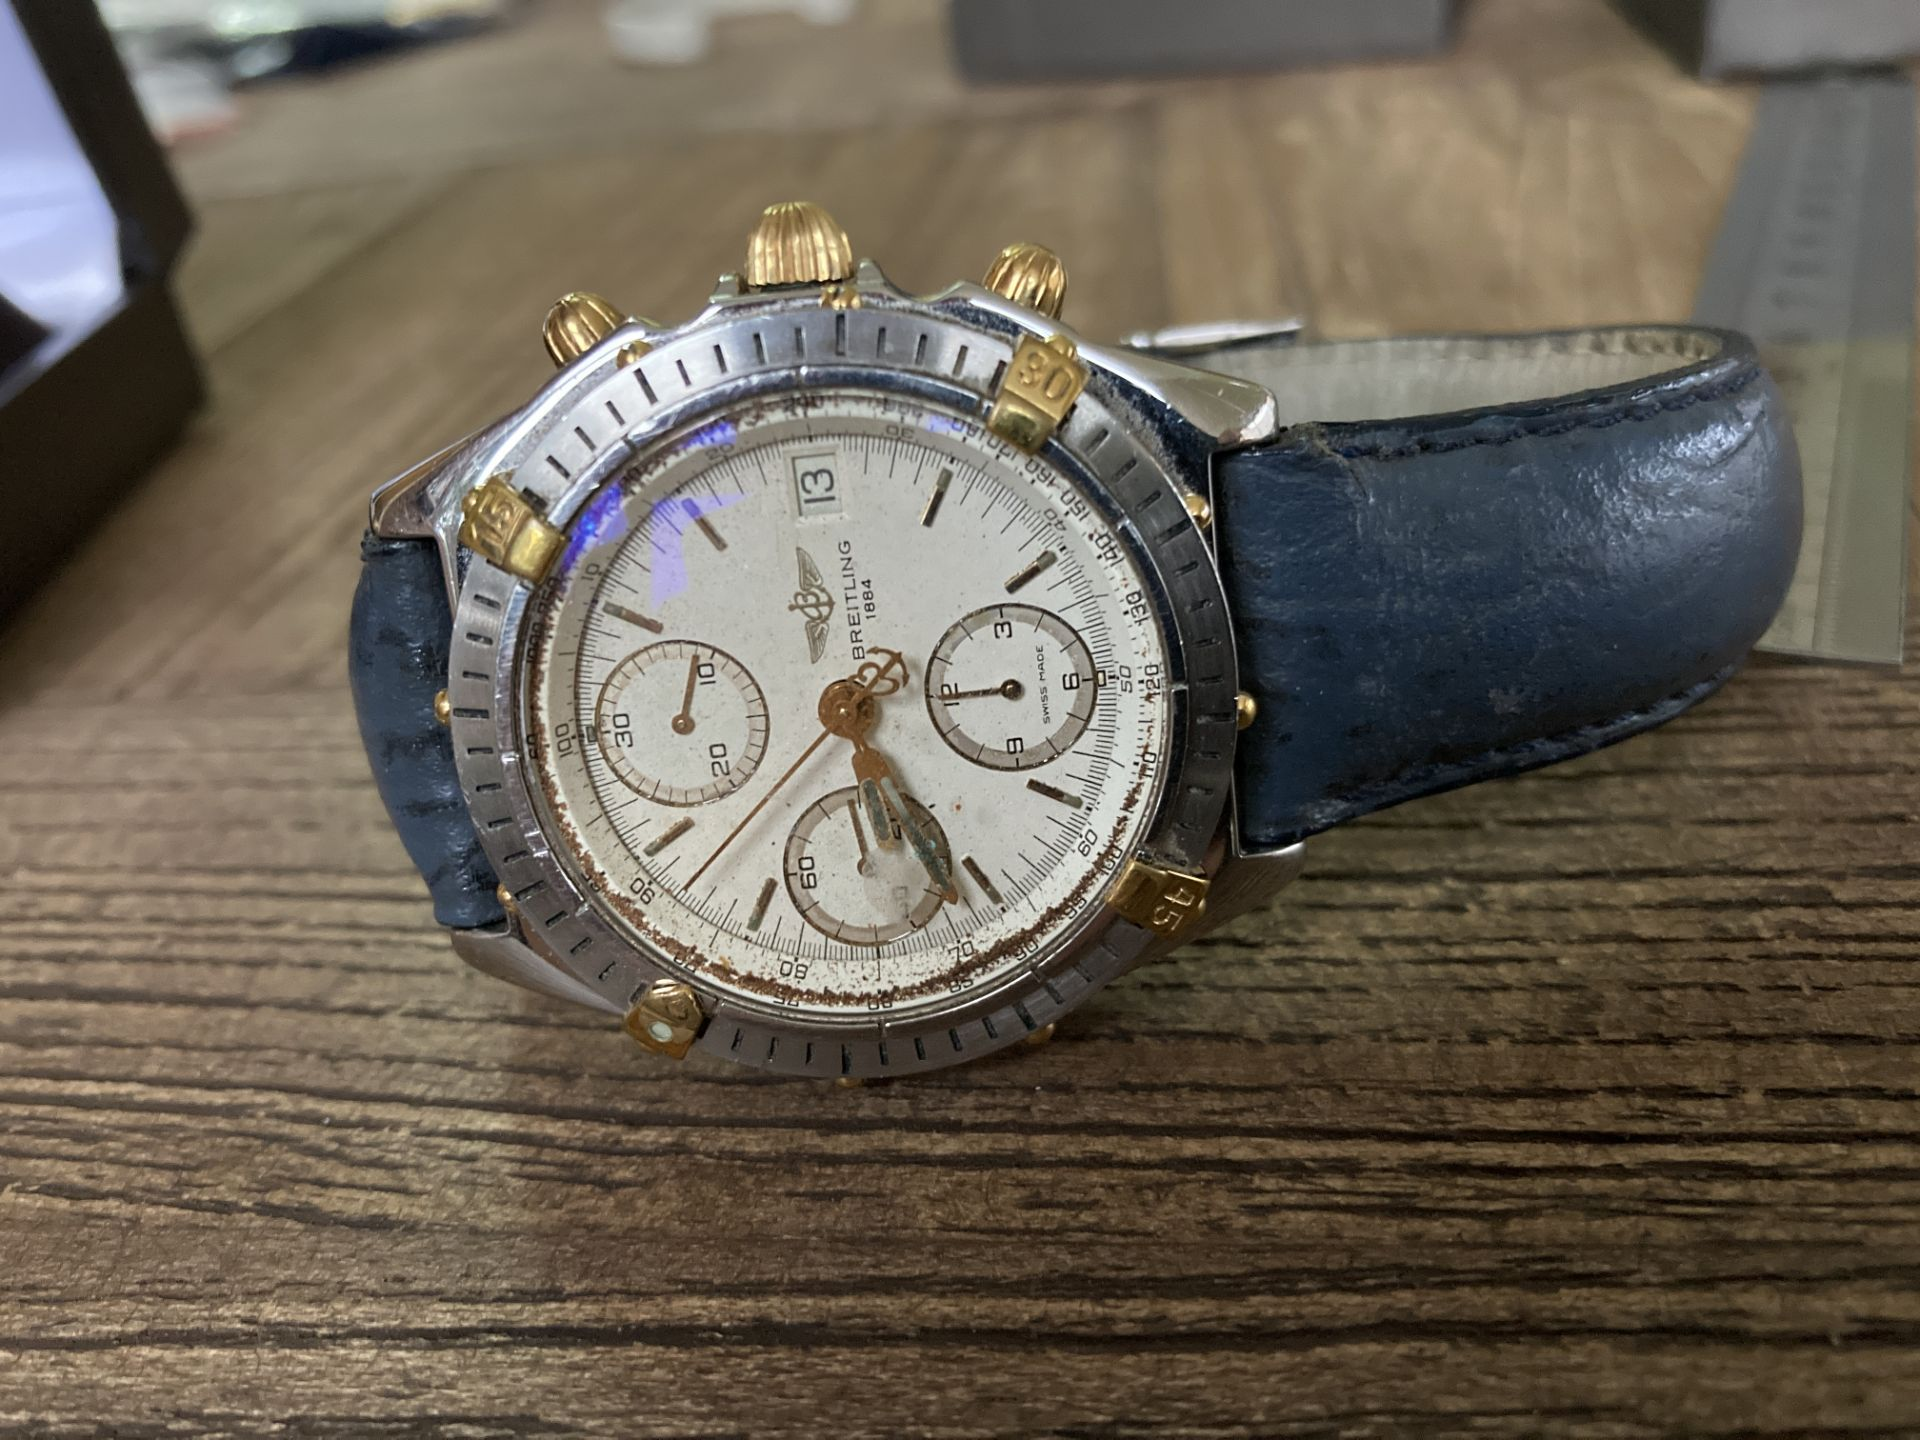 BREITLING B13048 STEEL AND GOLD CHRONO - 39MM APPROX.